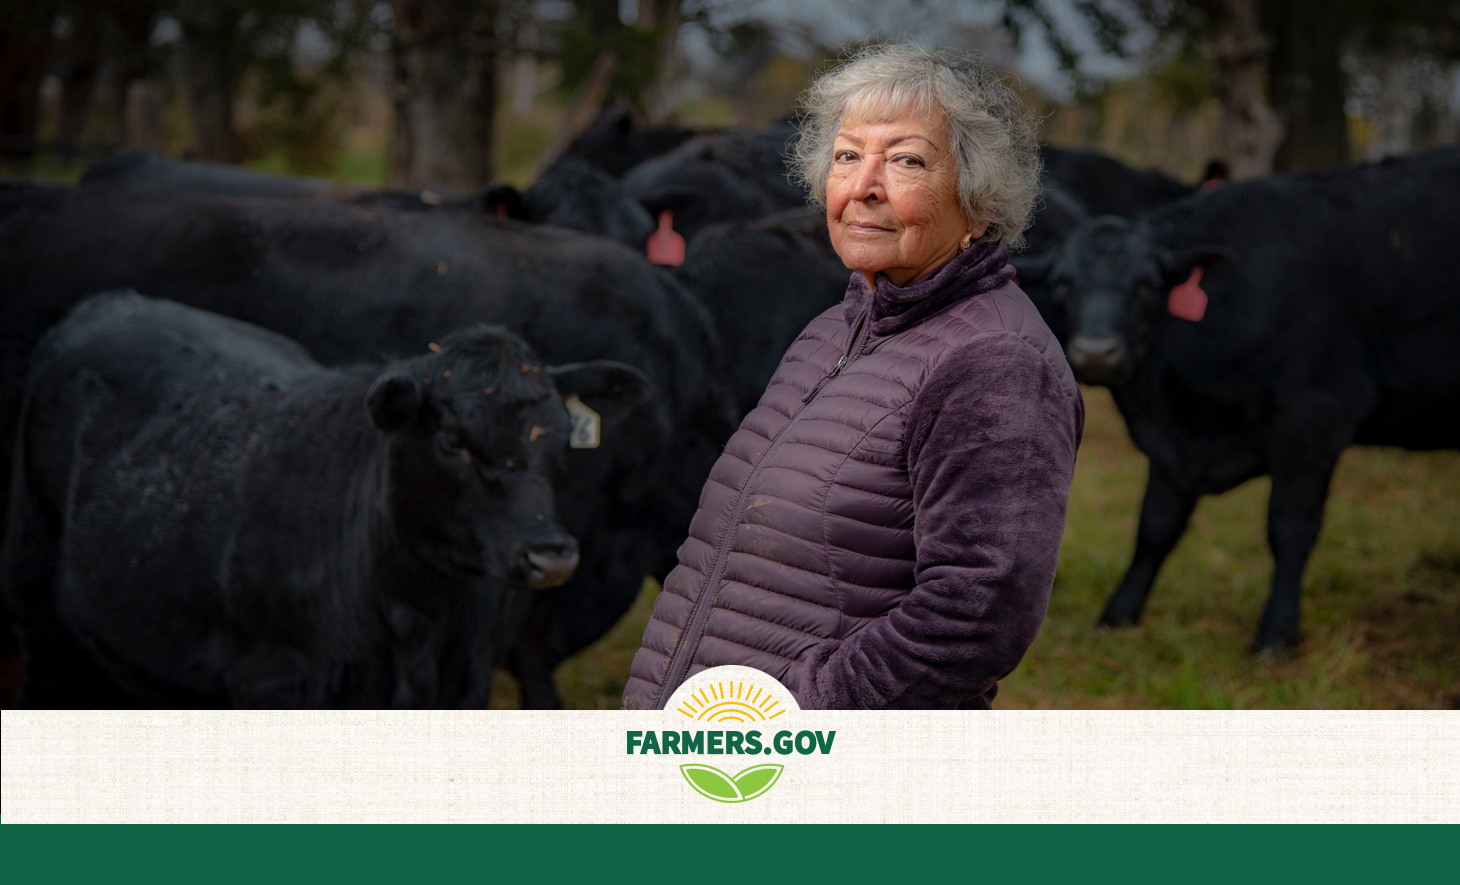 Over the decades, Margarita Munoz has raised a family, worked non-farming full-time jobs, and built a thriving cattle business.